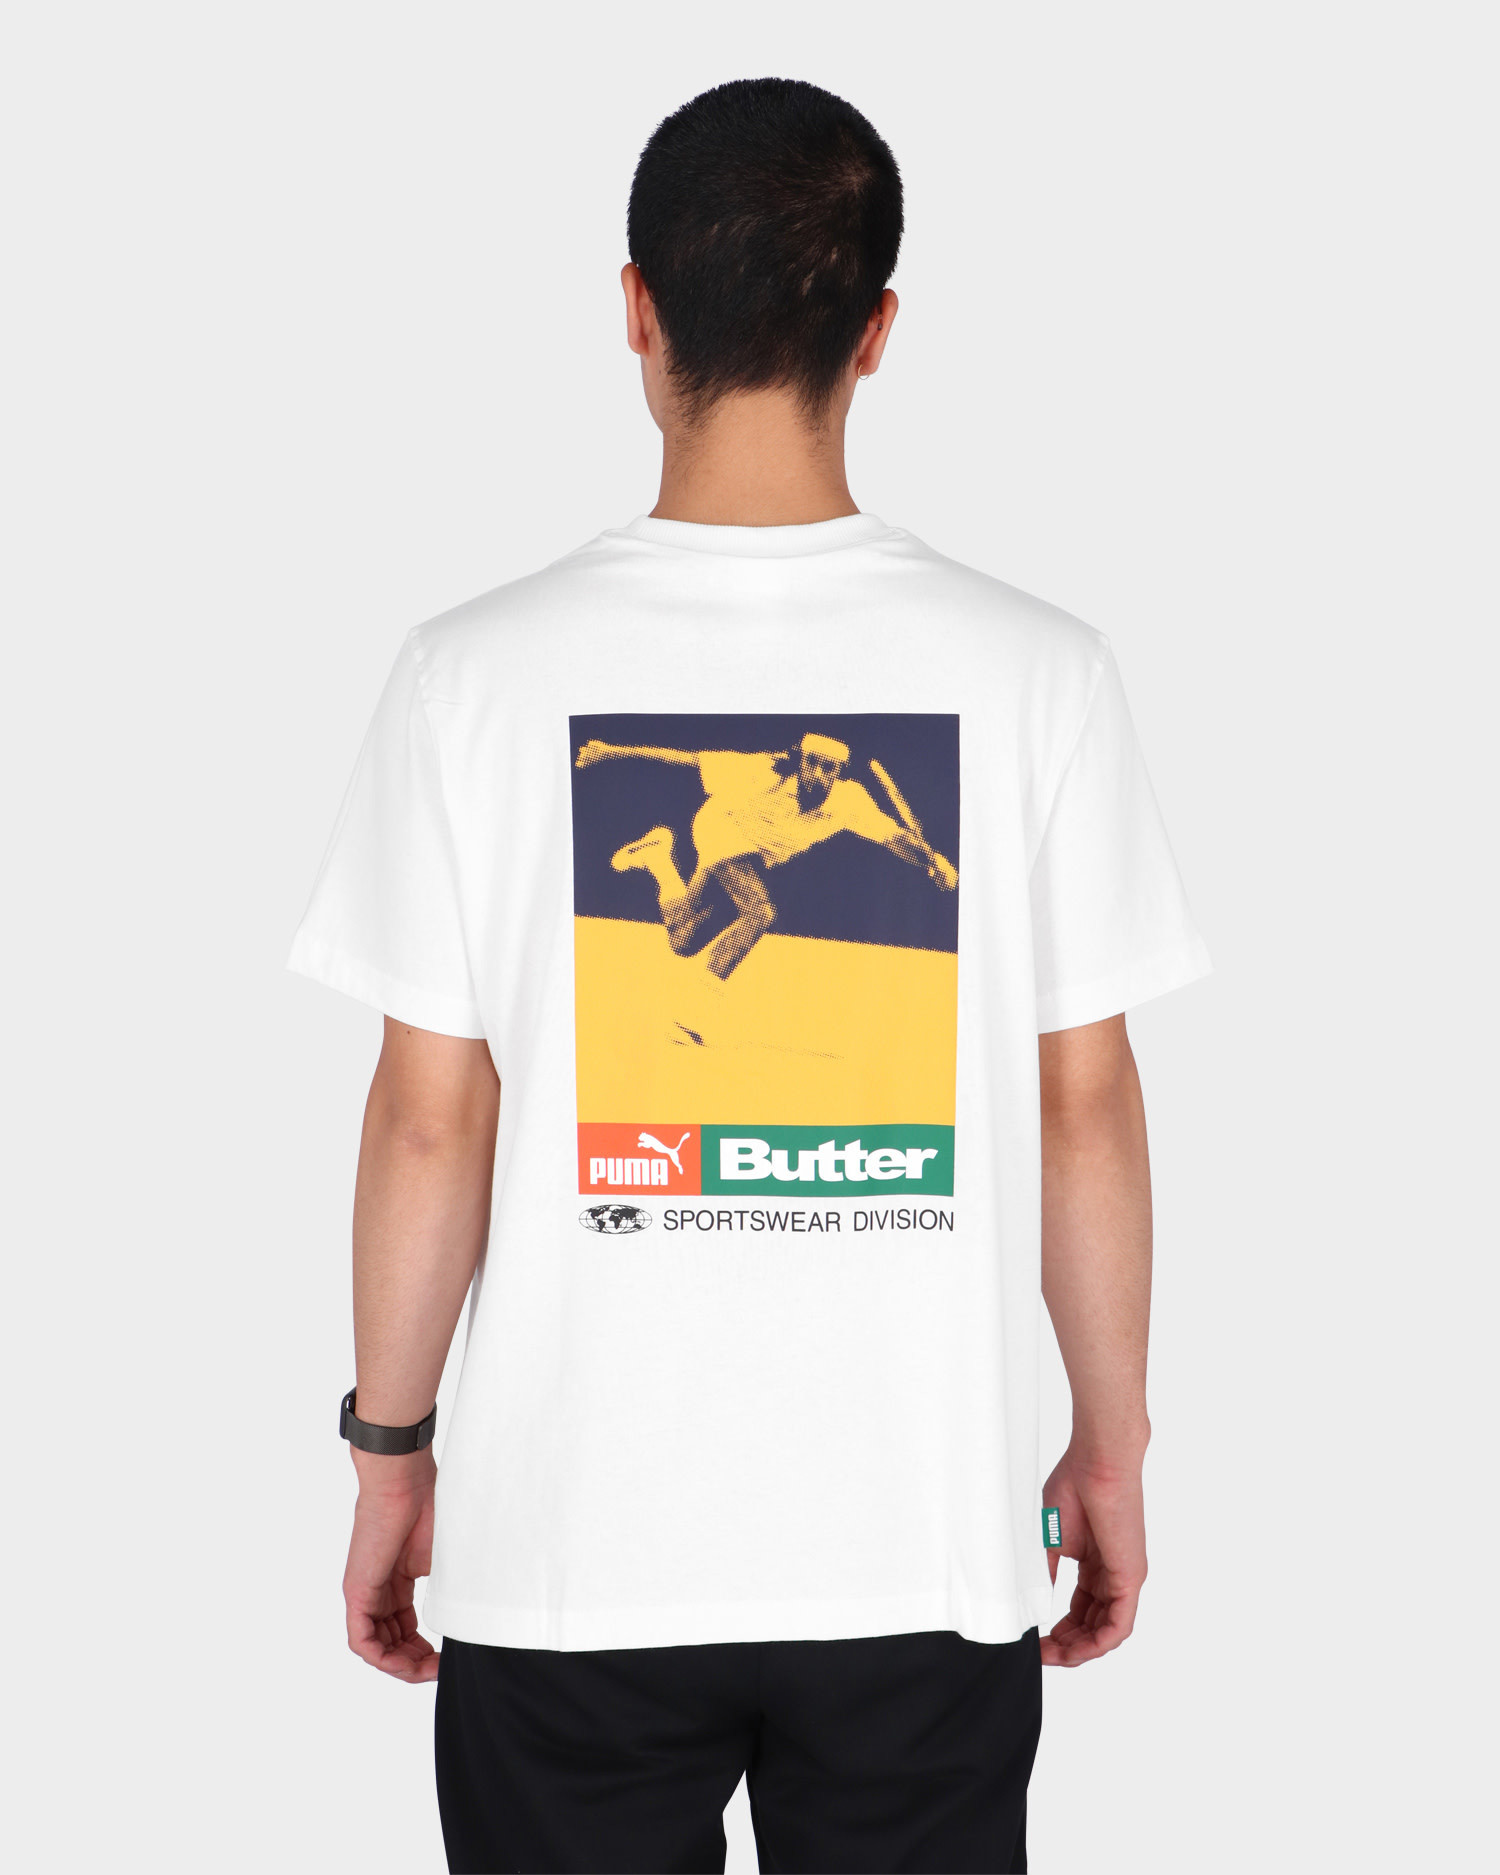 Puma X Butter Goods Graphic Tee White